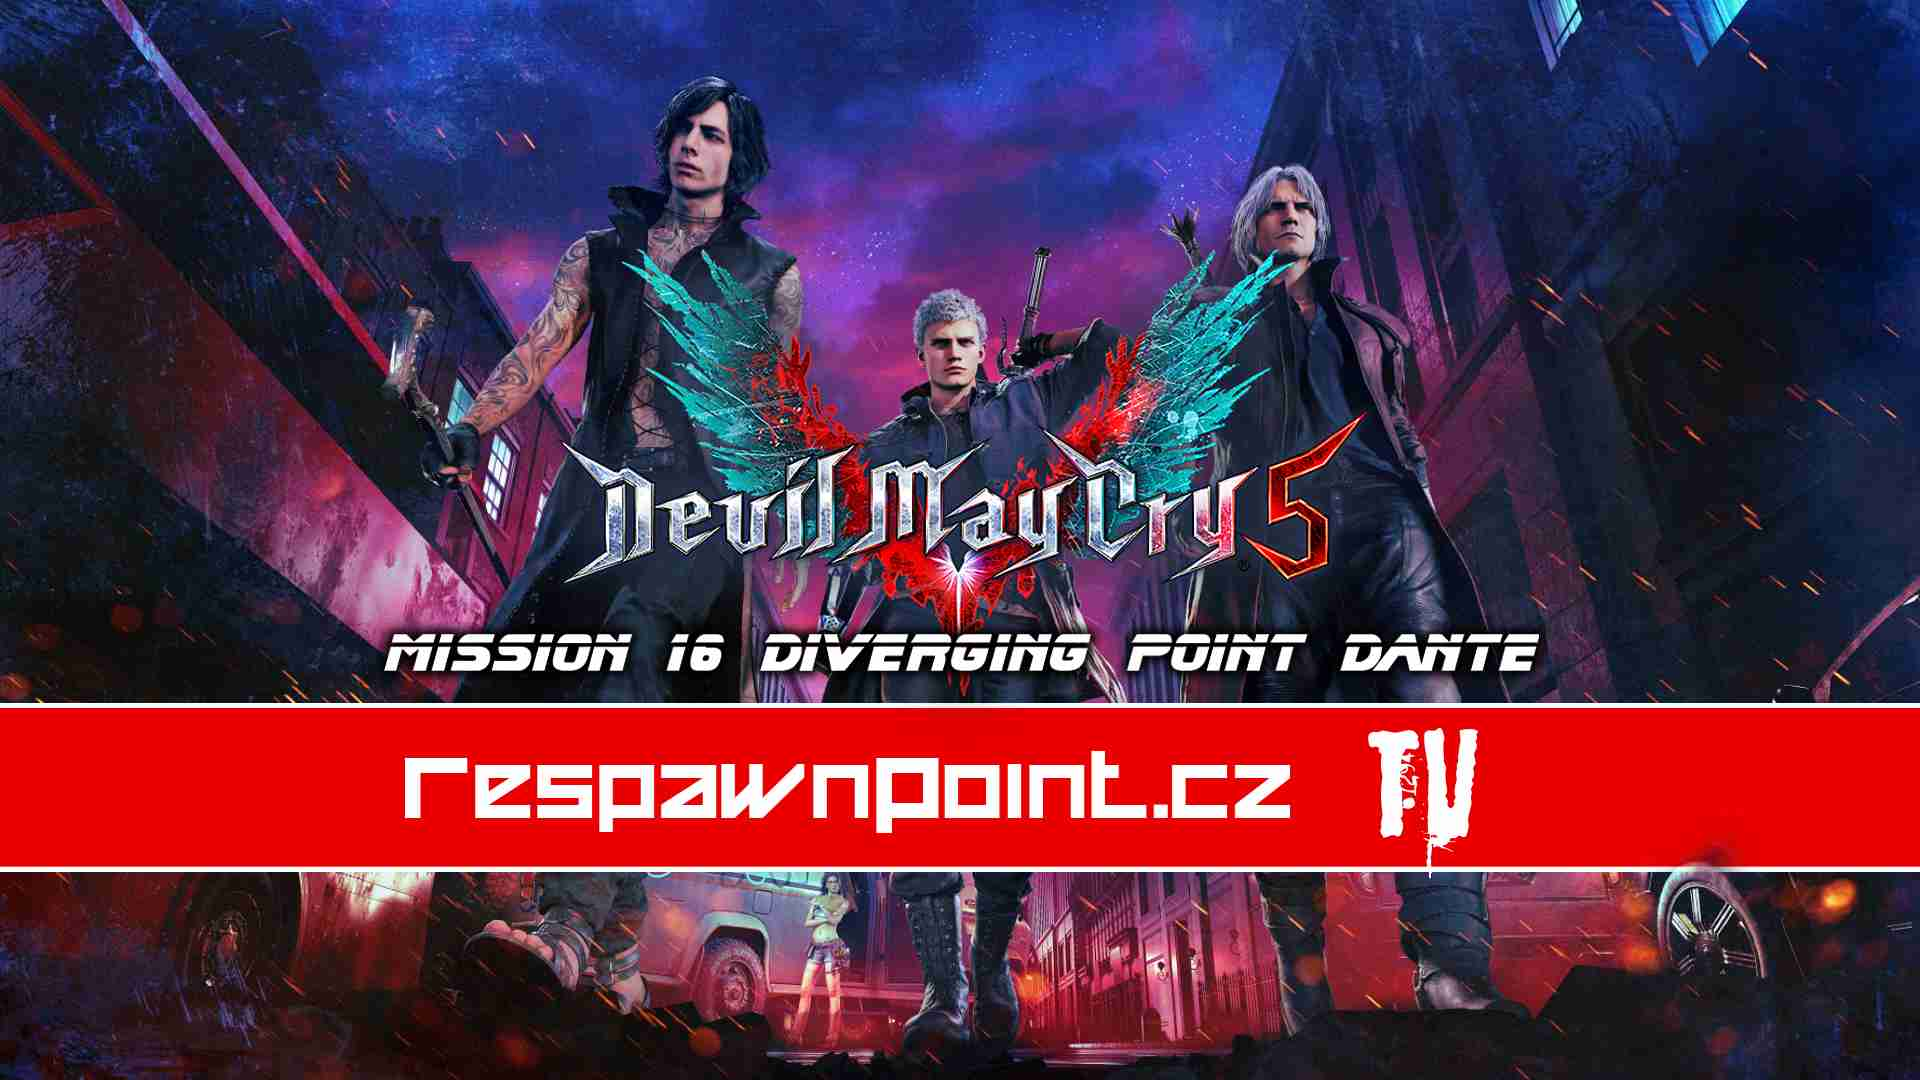 Devil May Cry 5 – Mission 16: Diverging Point Dante – Gameplay